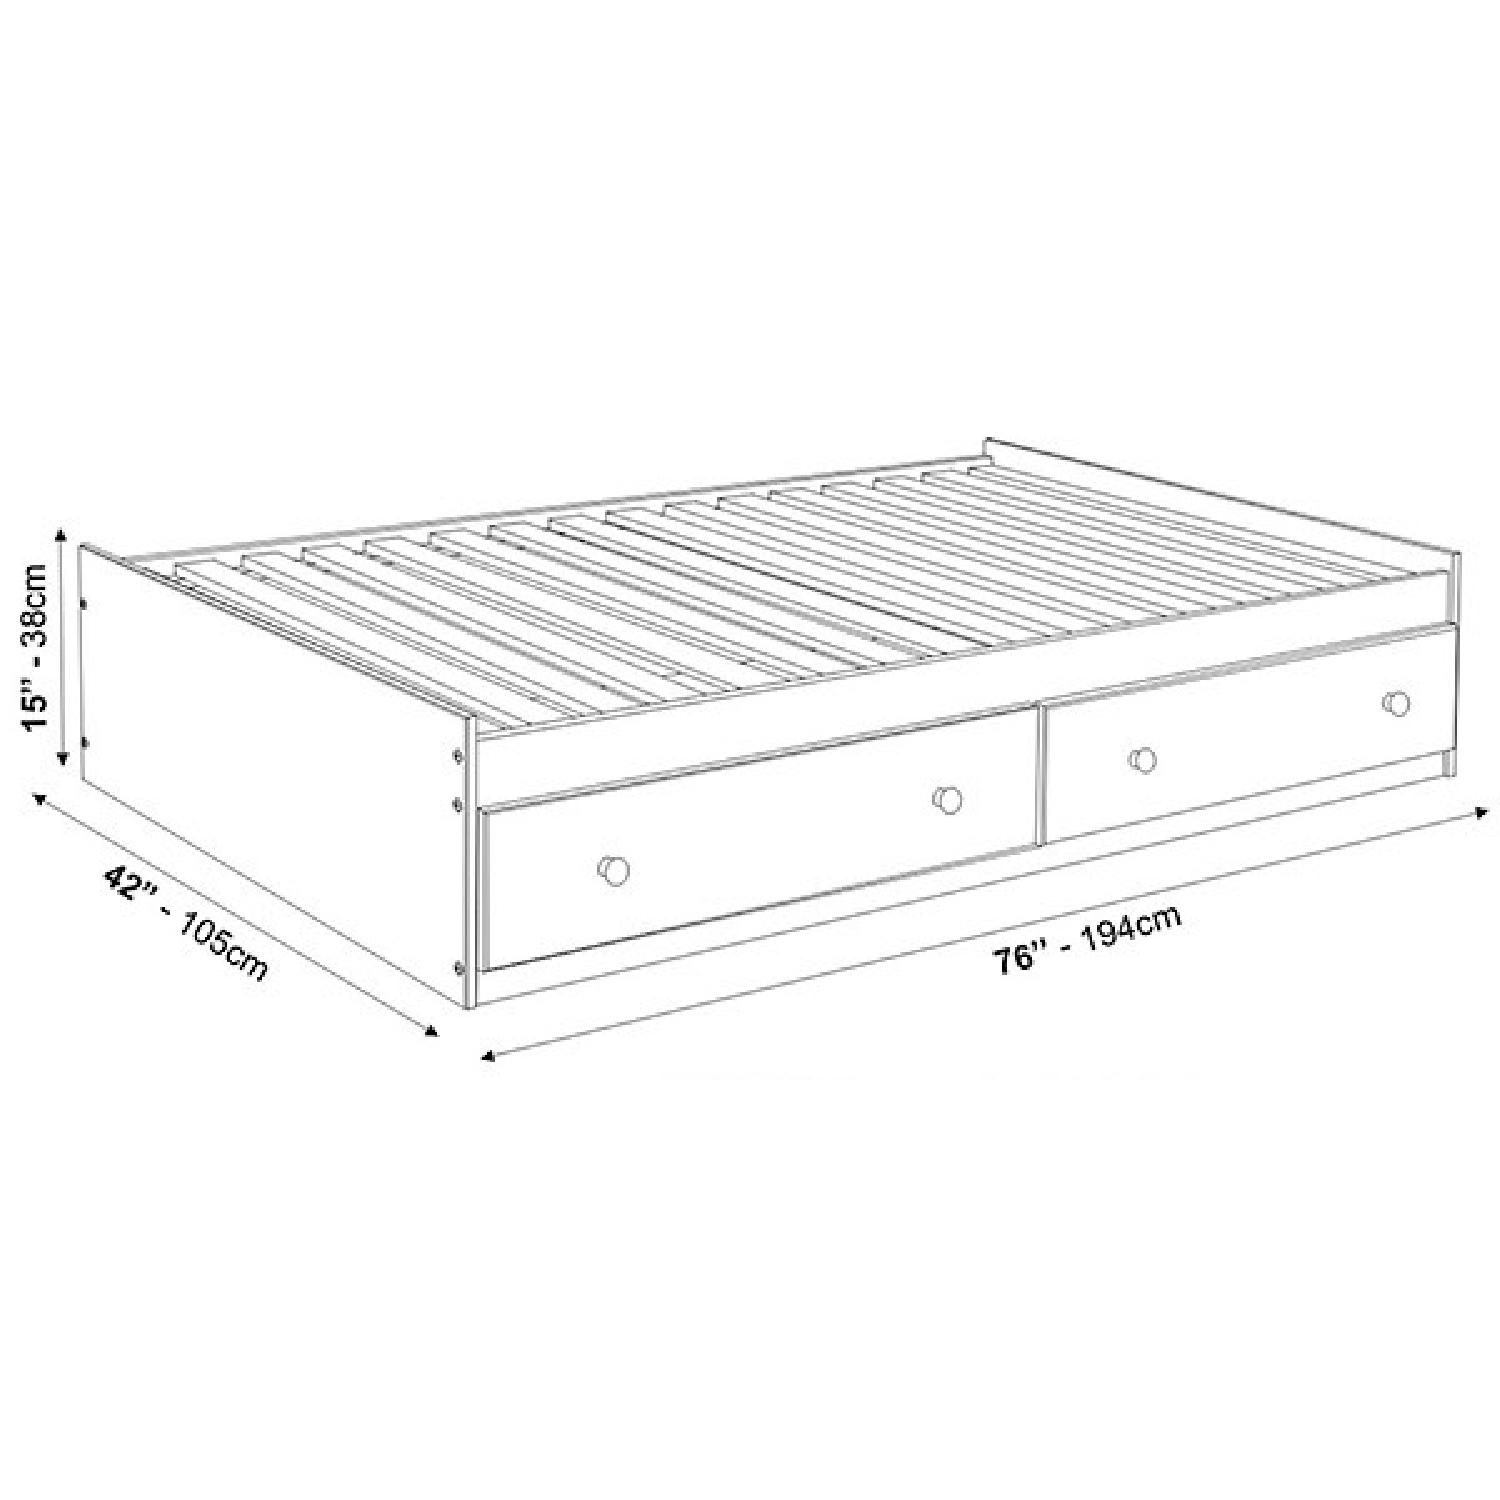 Twin Size Solid Wood Bed in Mahogany w/ Storage Drawers - image-4